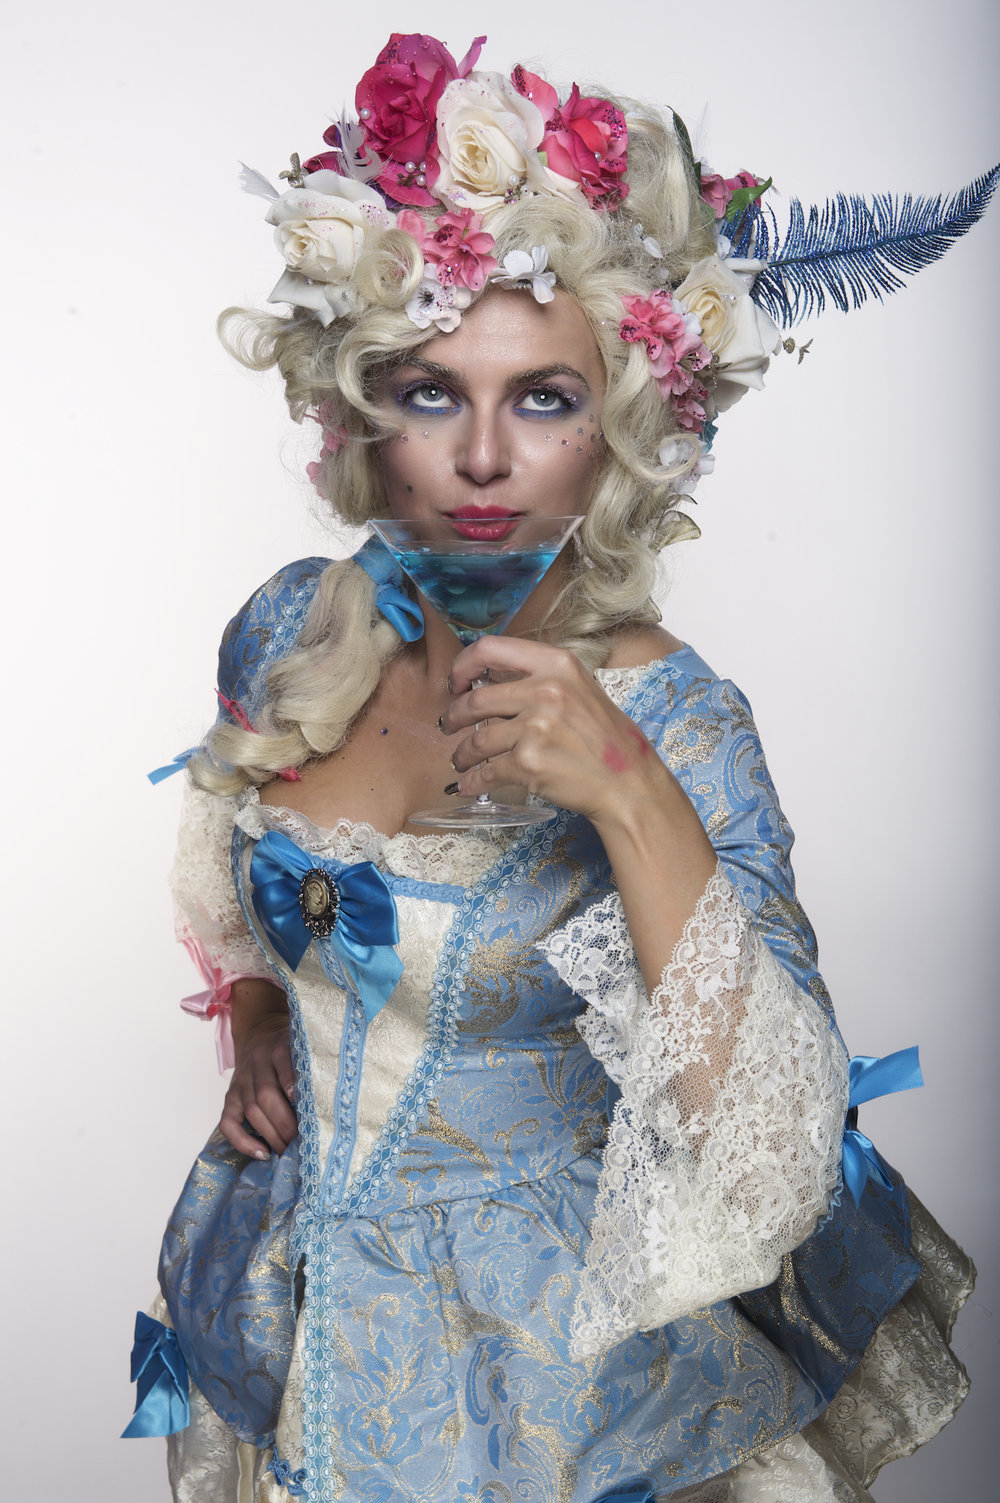 A New Orleans studio portrait headshot of a costume of Marie Antoinette.  Image by New Orleans based portrait photographer, Marc Pagani